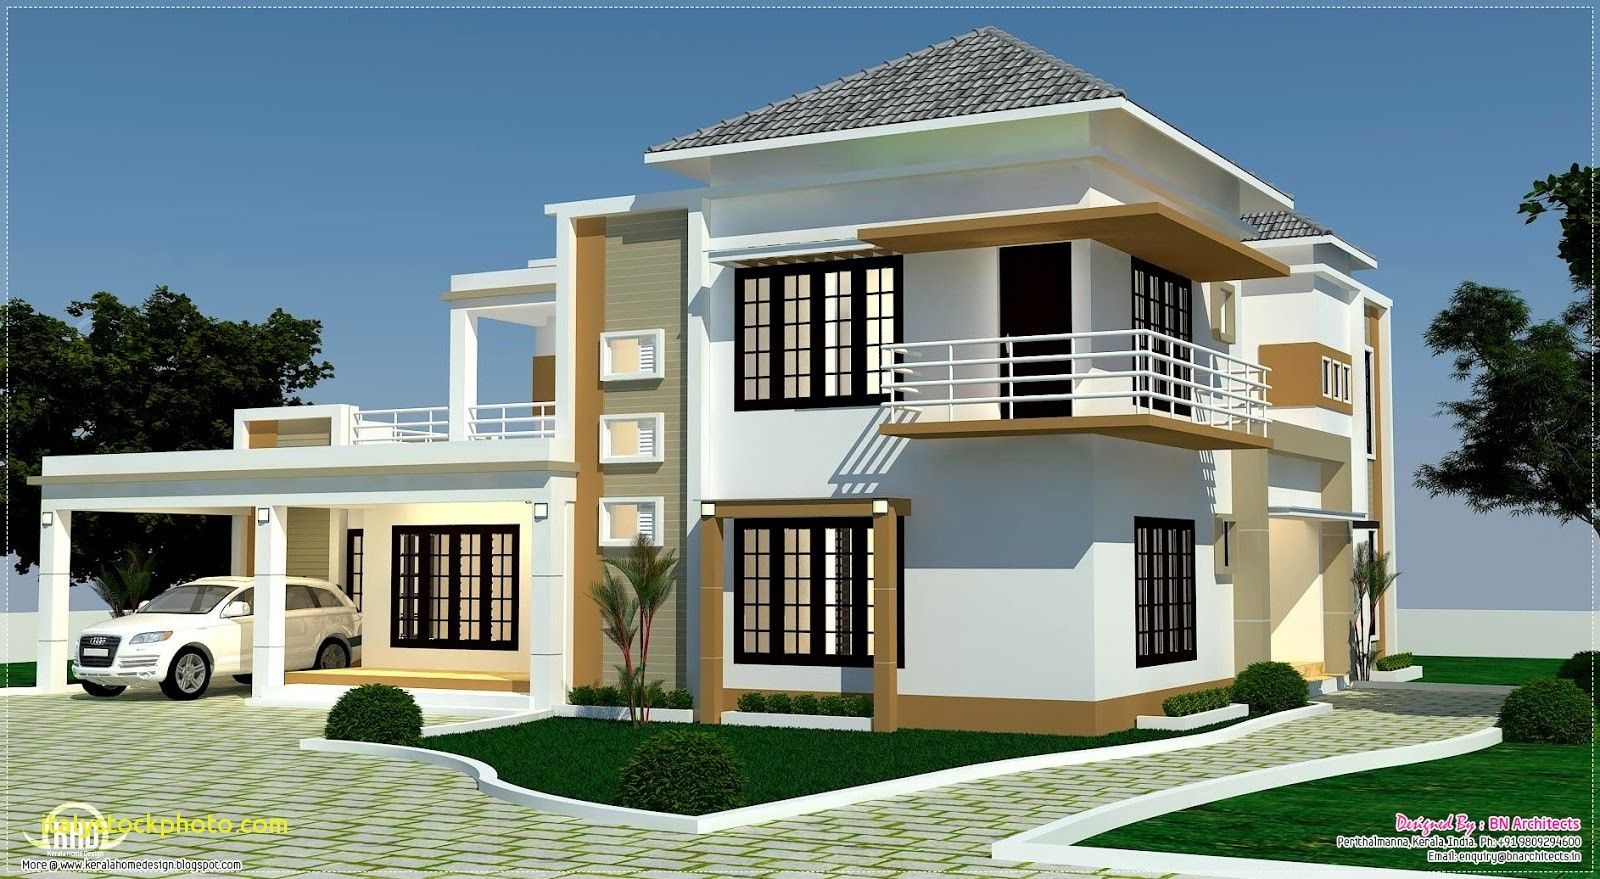 View House Plans In 3d House For Rent Near Me Houseplans House Houseplan 3d Homepl Small House Floor Plans Modern House Floor Plans Cottage Floor Plans